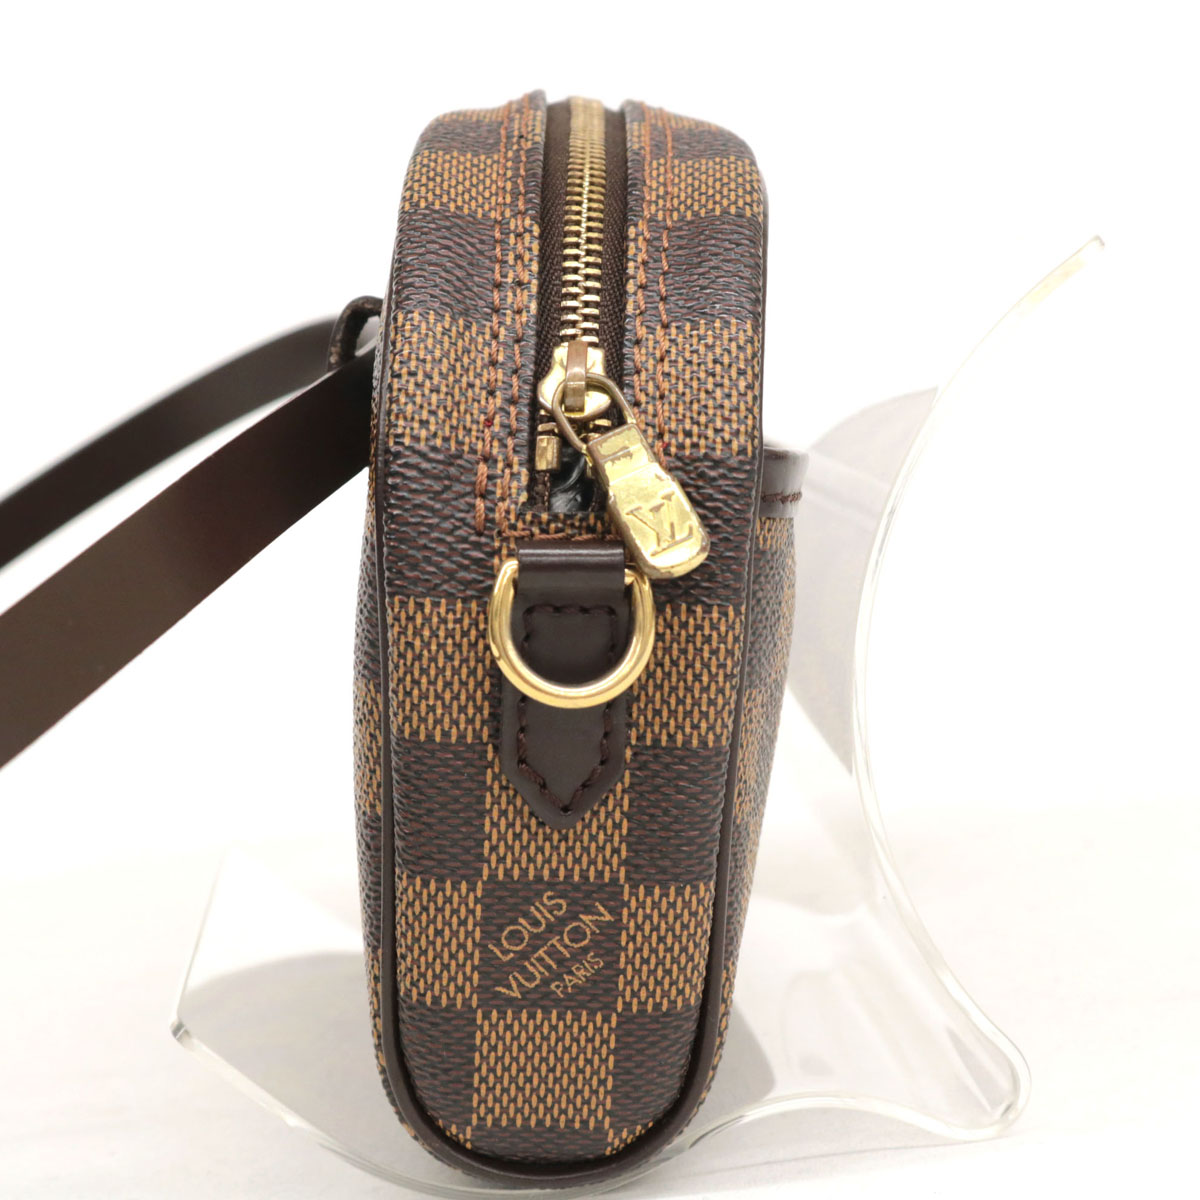 LOUIS VUITTON ルイヴィトン ダミエ イパネマ ウェストポーチbrown茶 ブラウン ポシェット エベヌbf7Yvy6g